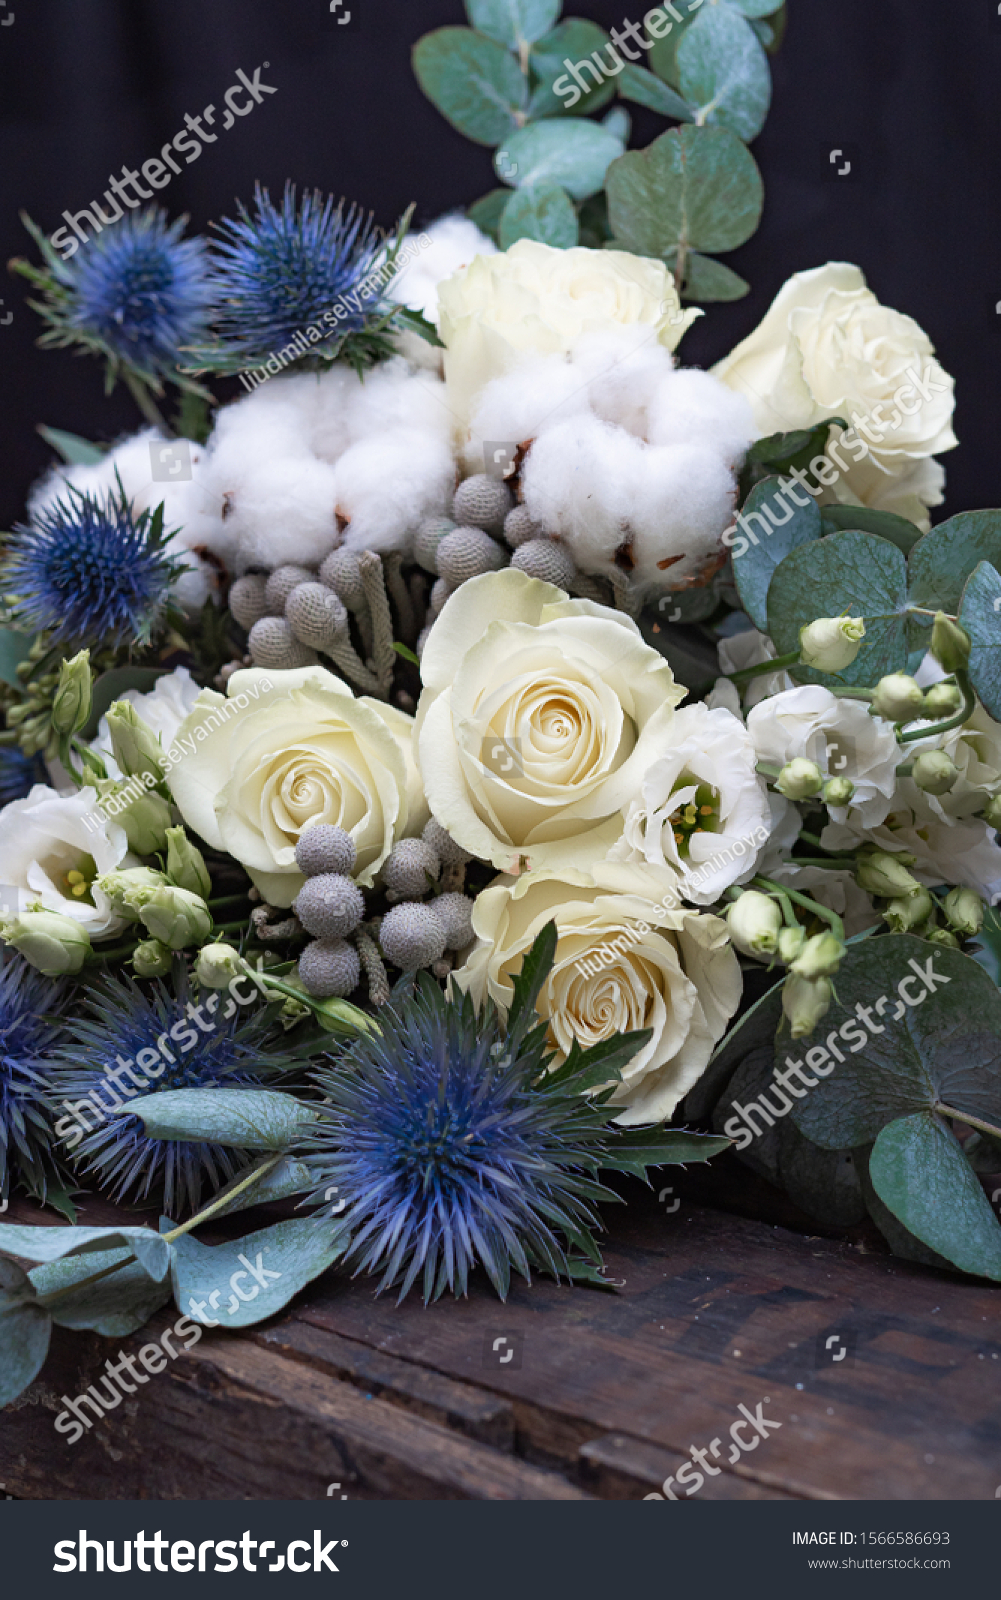 Winter Wedding Bouquet White Roses Cotton Stock Photo Edit Now 1566586693